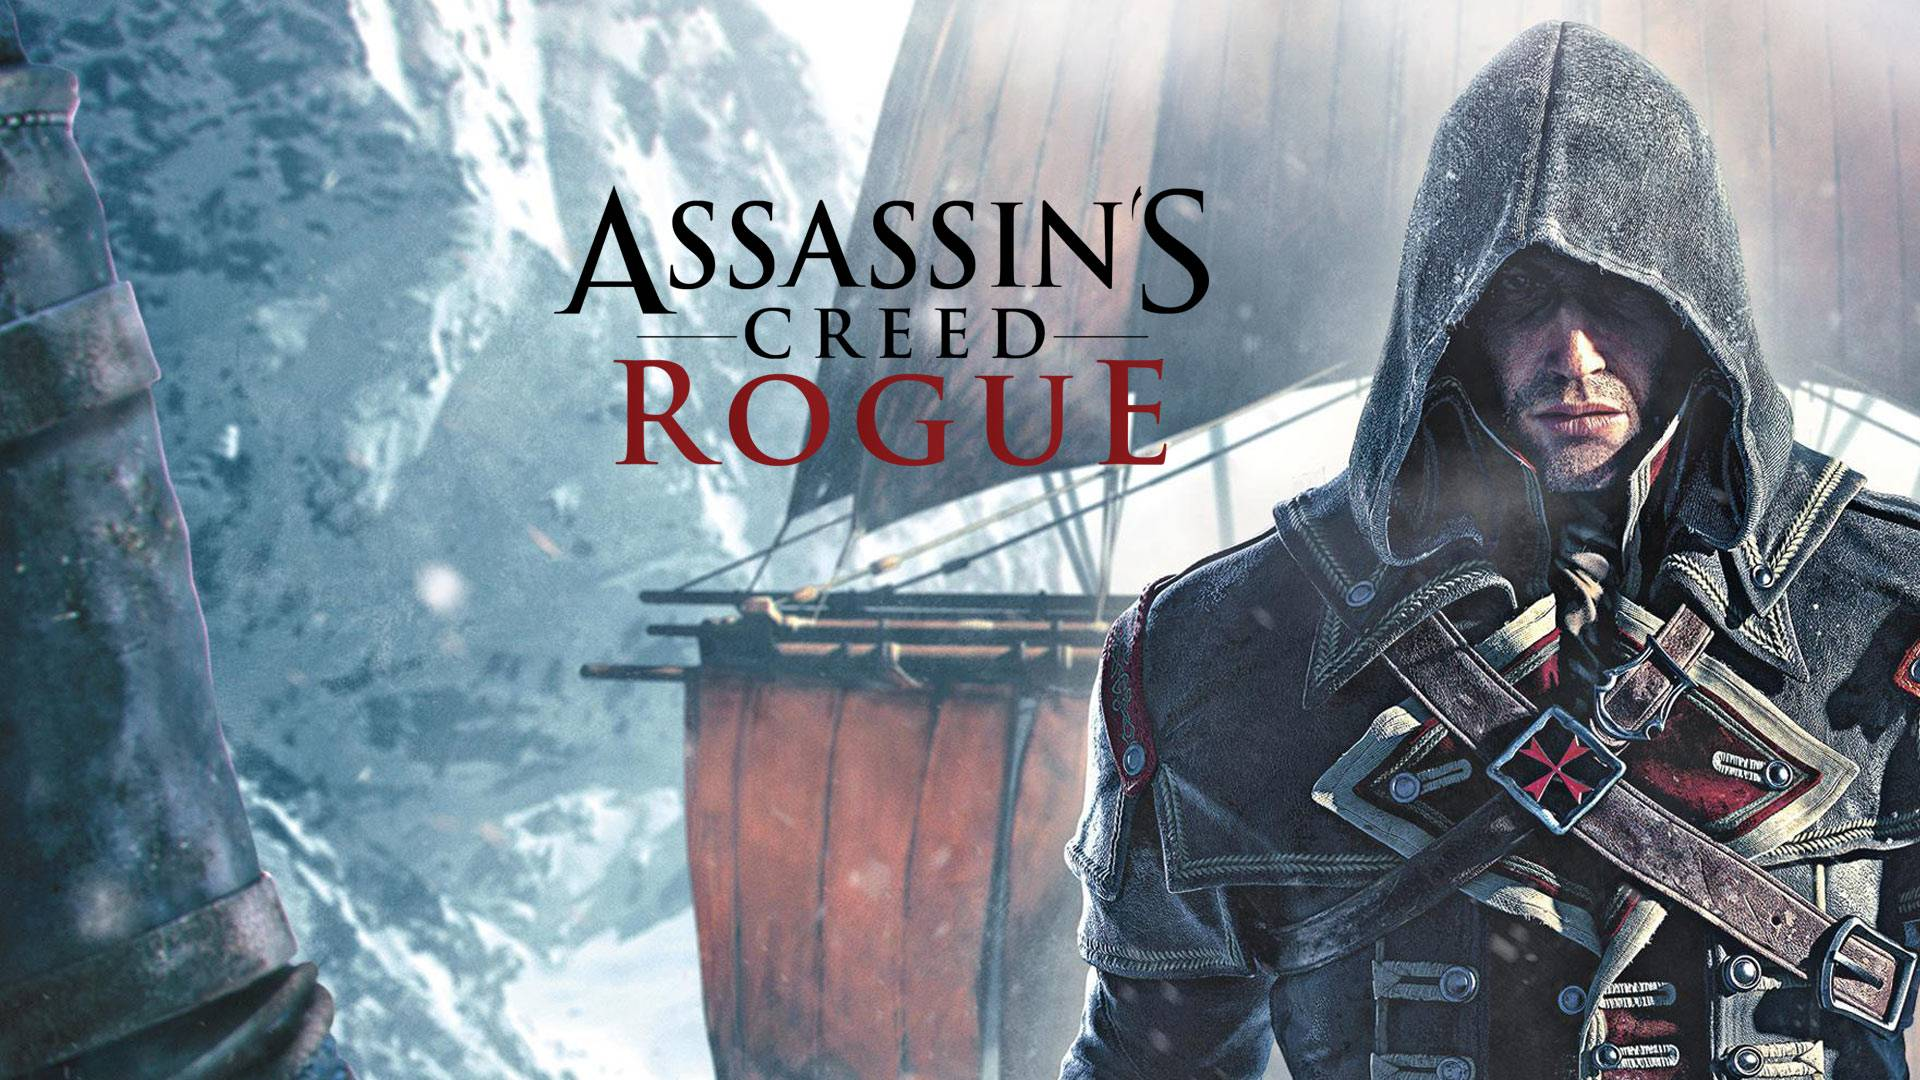 Assassin's Creed Rogue Switch footage